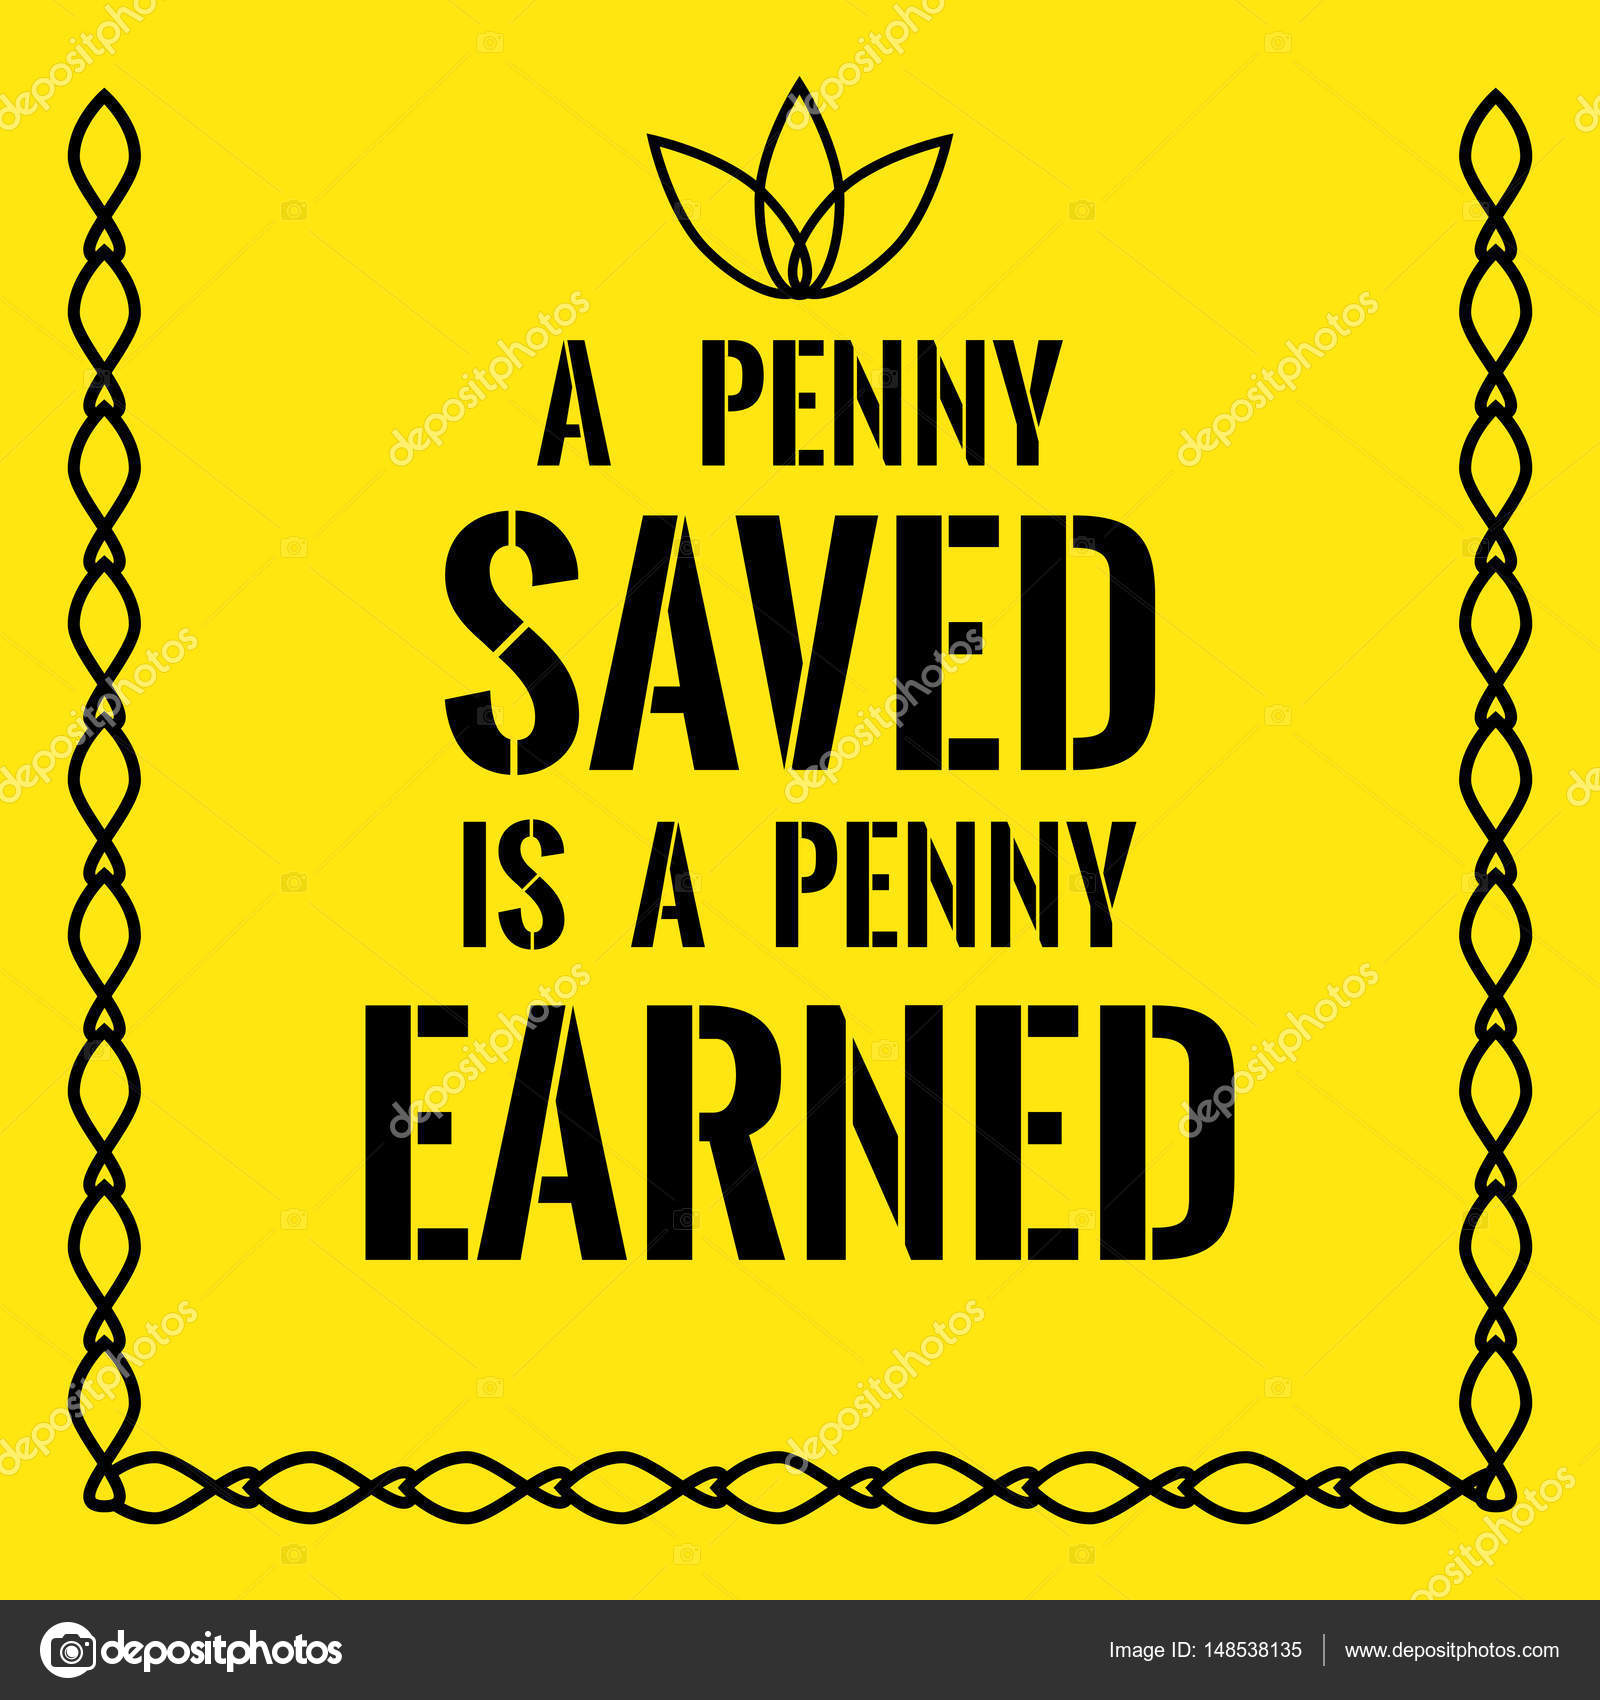 a penny saved is a penny